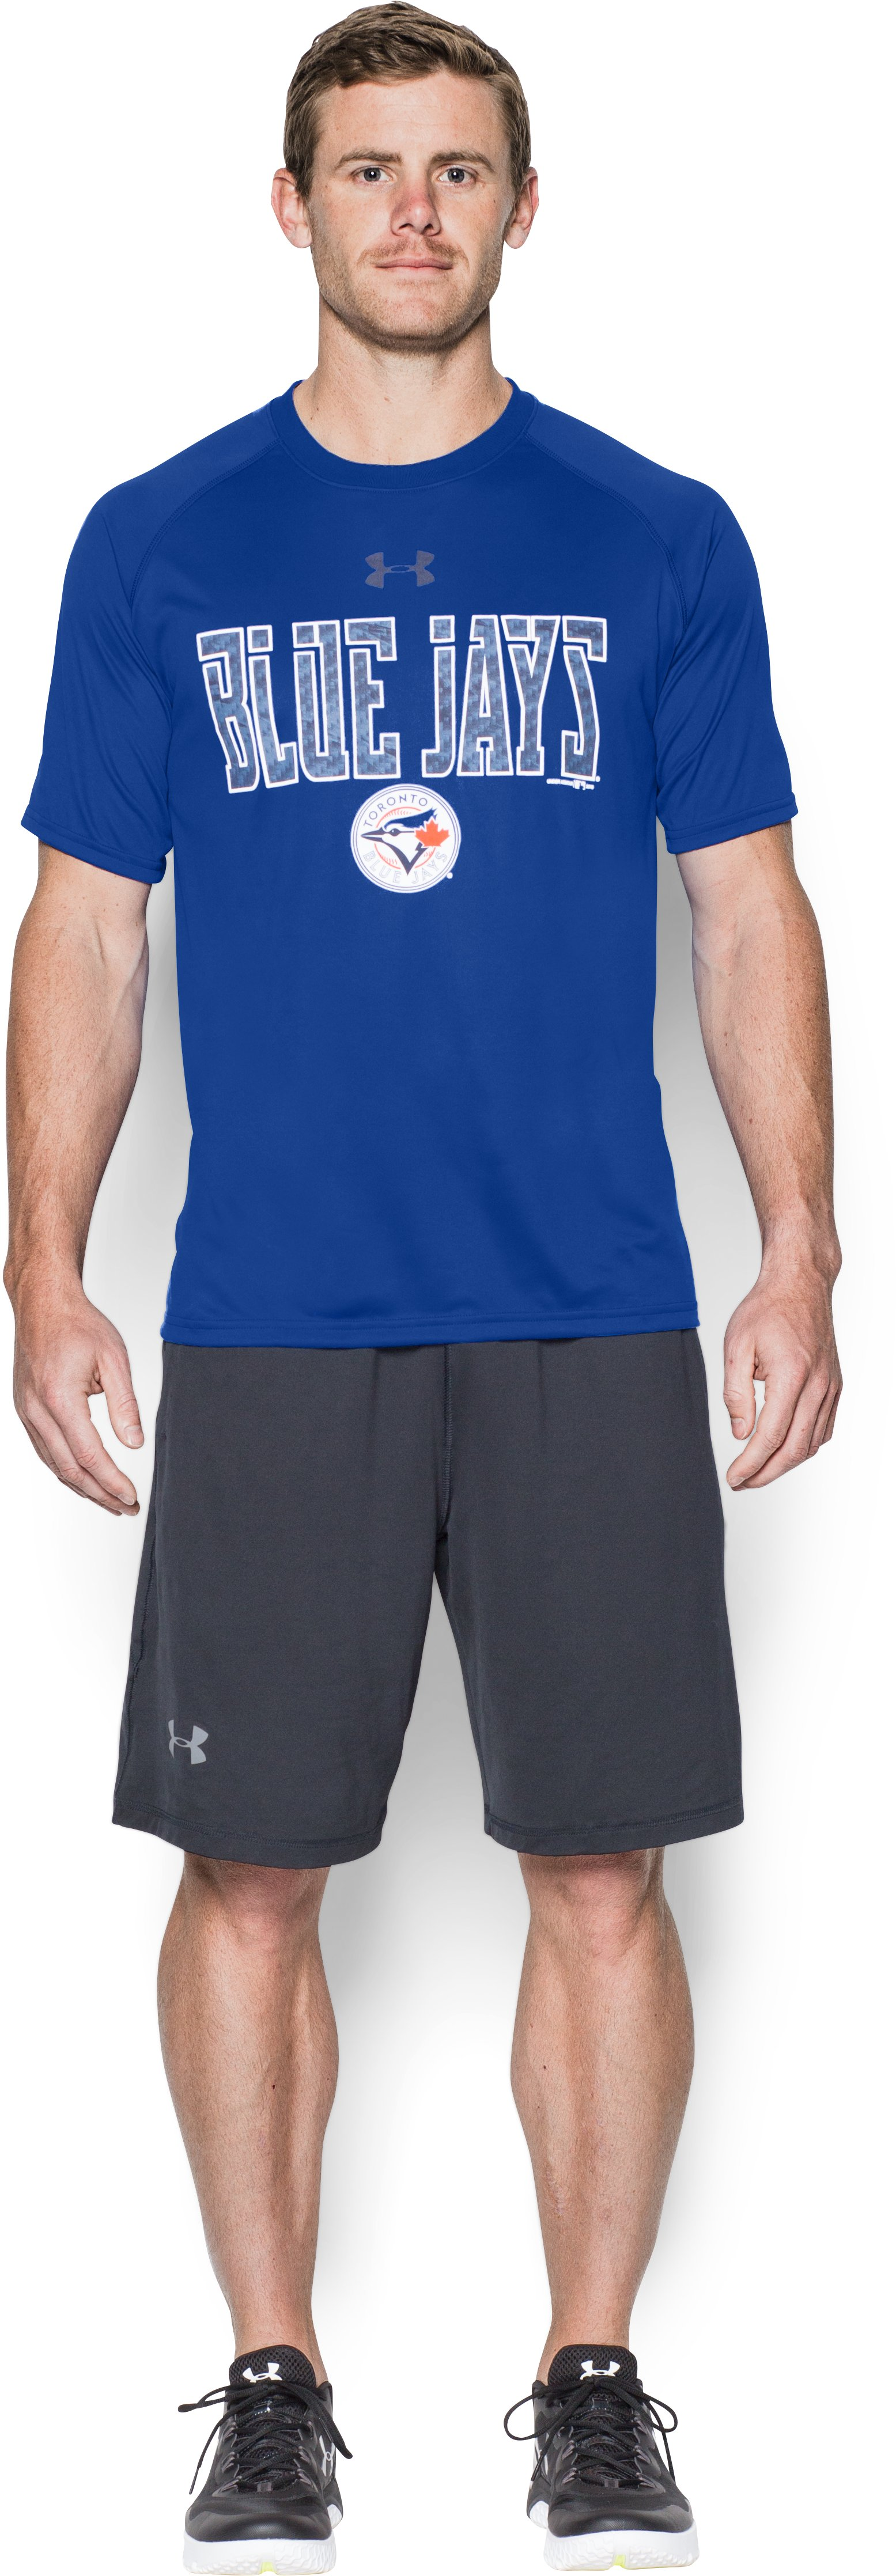 Men's Toronto Blue Jays Team Tech™ T-Shirt, Royal, zoomed image